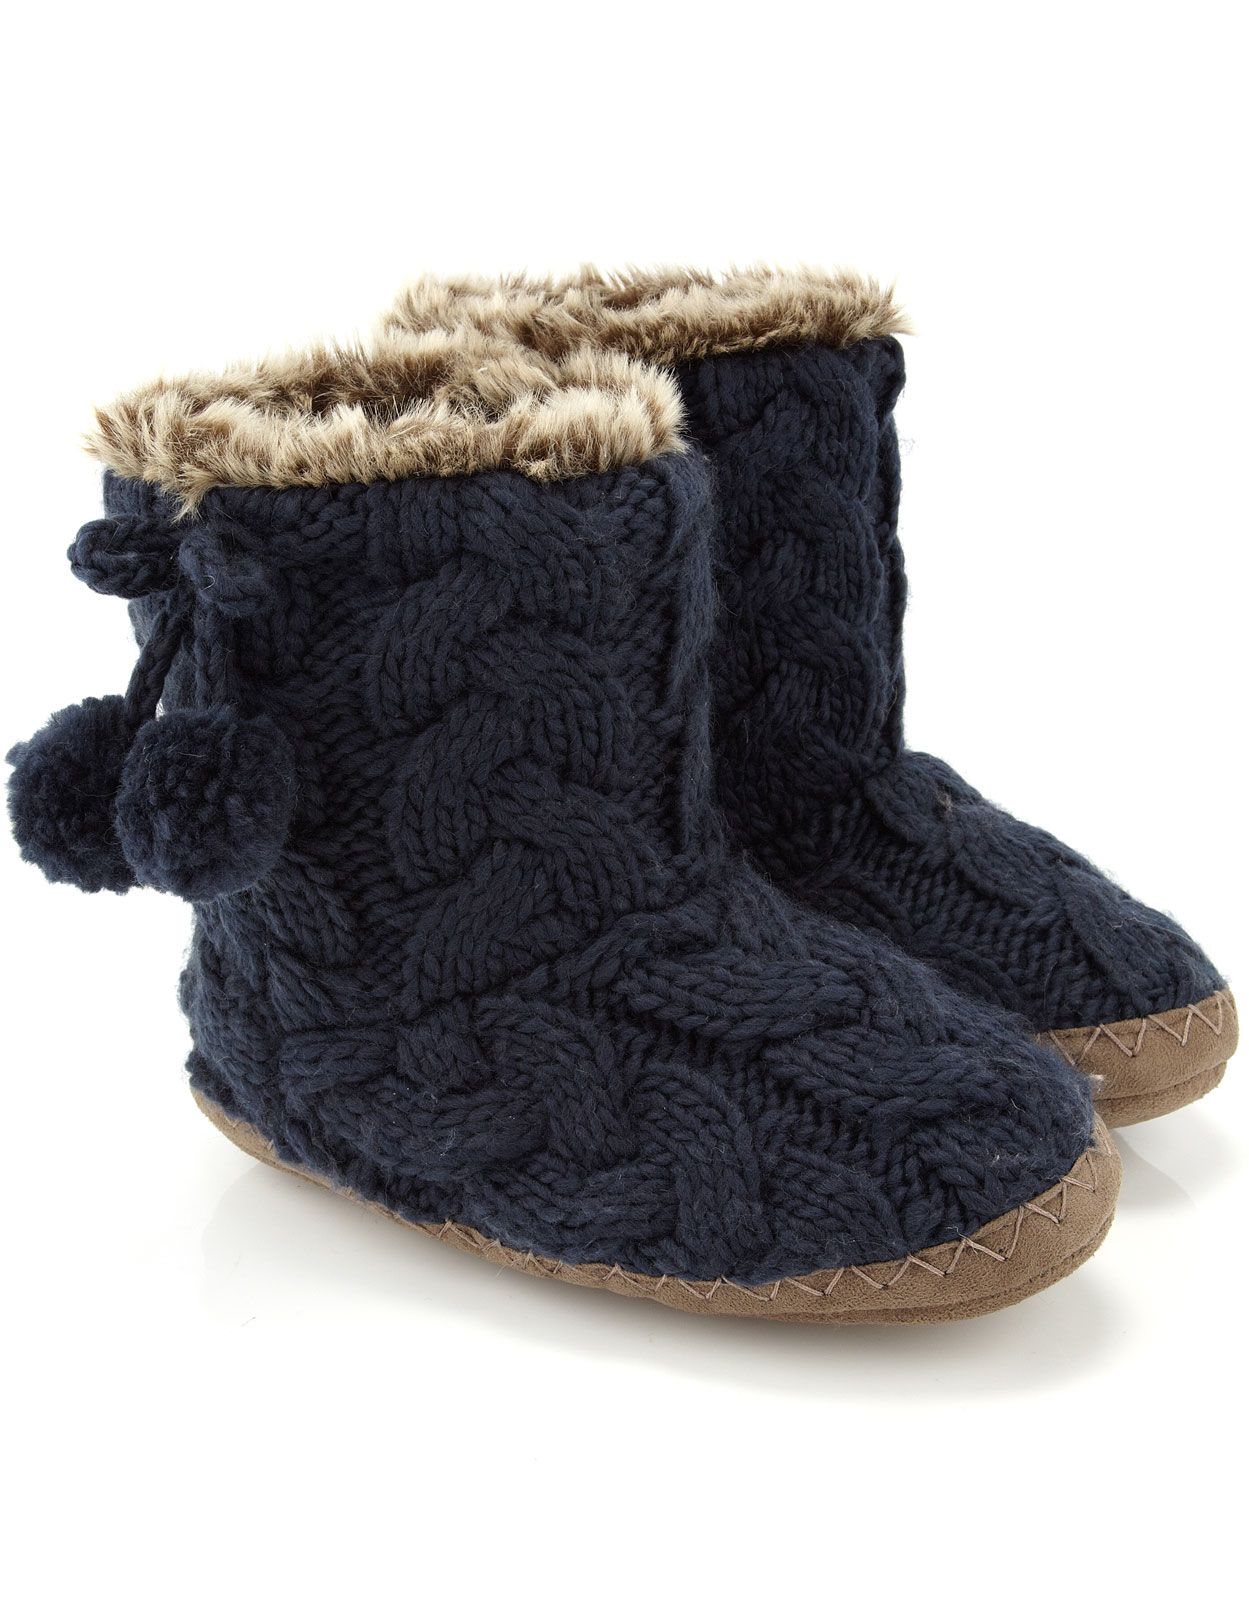 Plain Cable Short Boot Navy Accessorize Slippers Pinterest